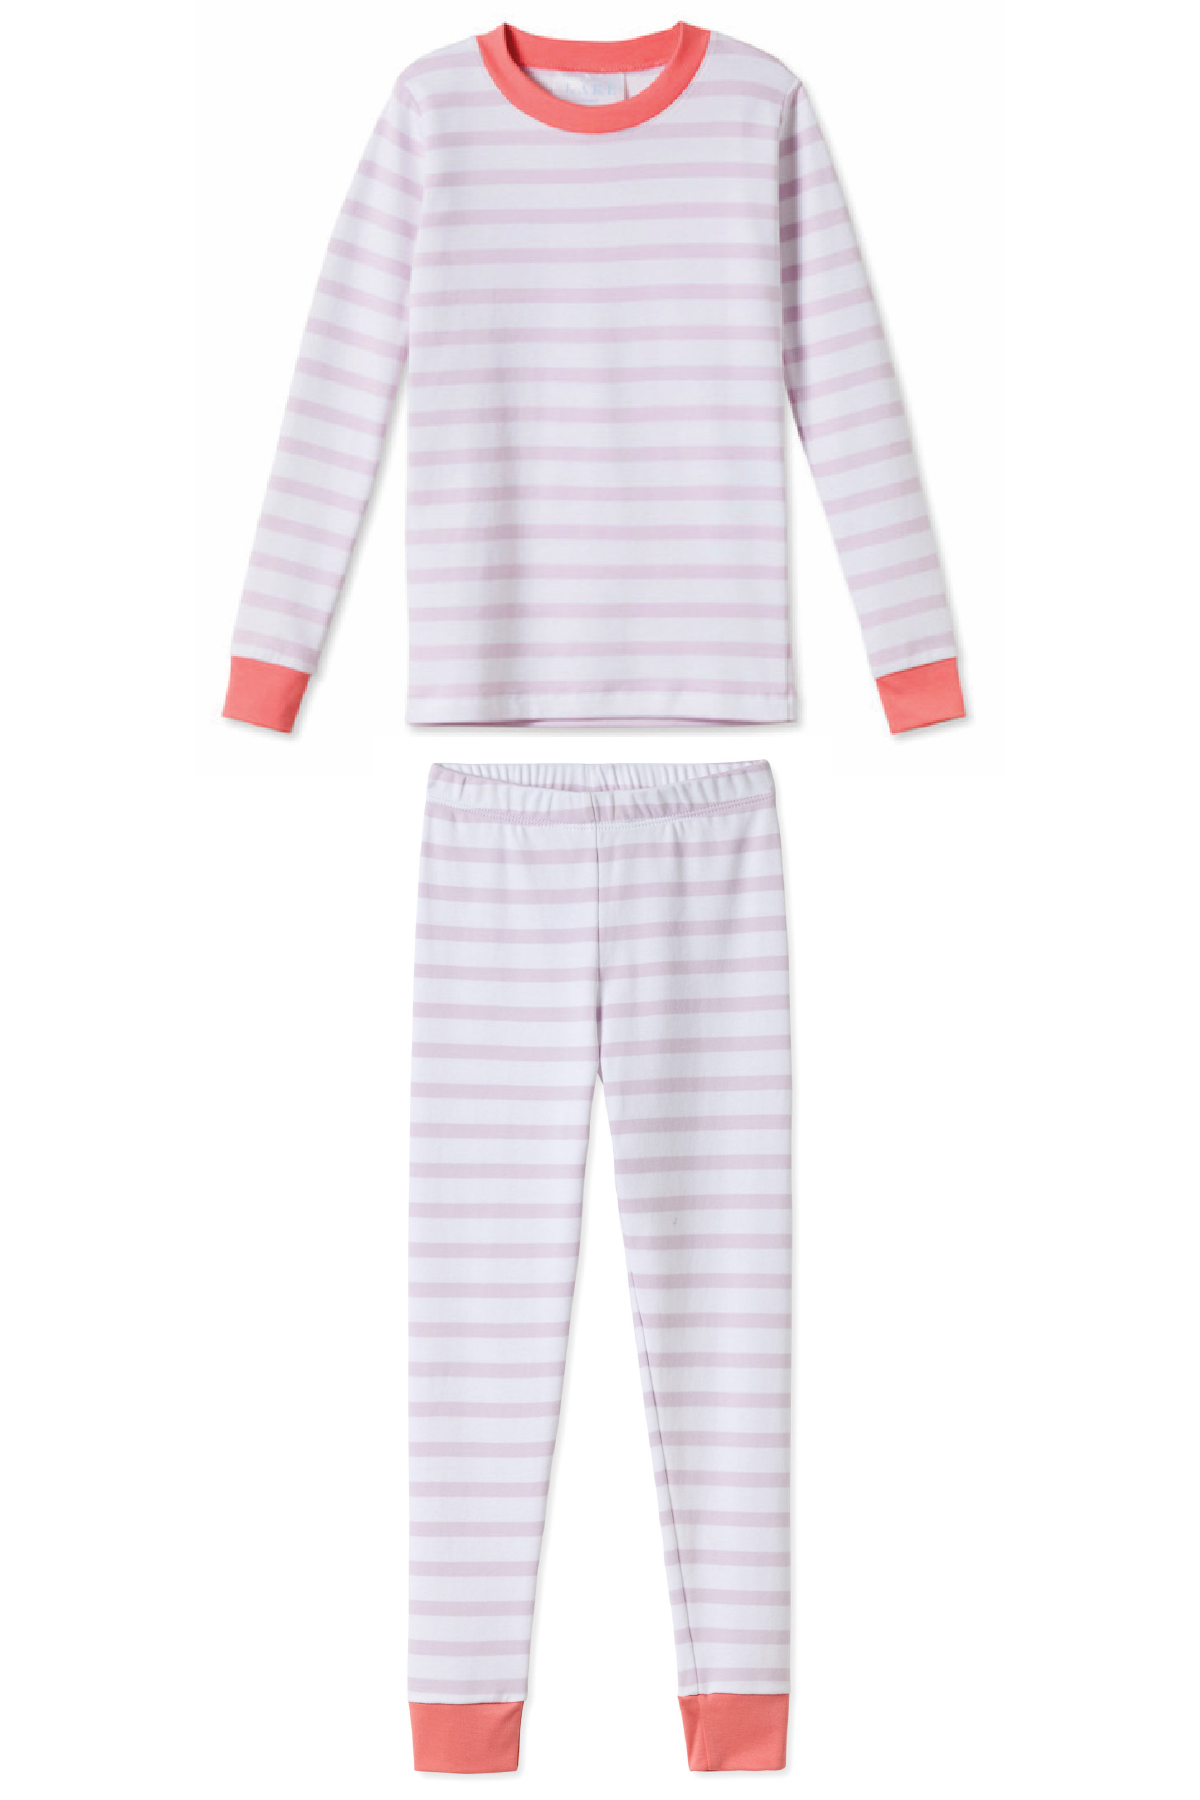 Kids Long-Long Set in Aster